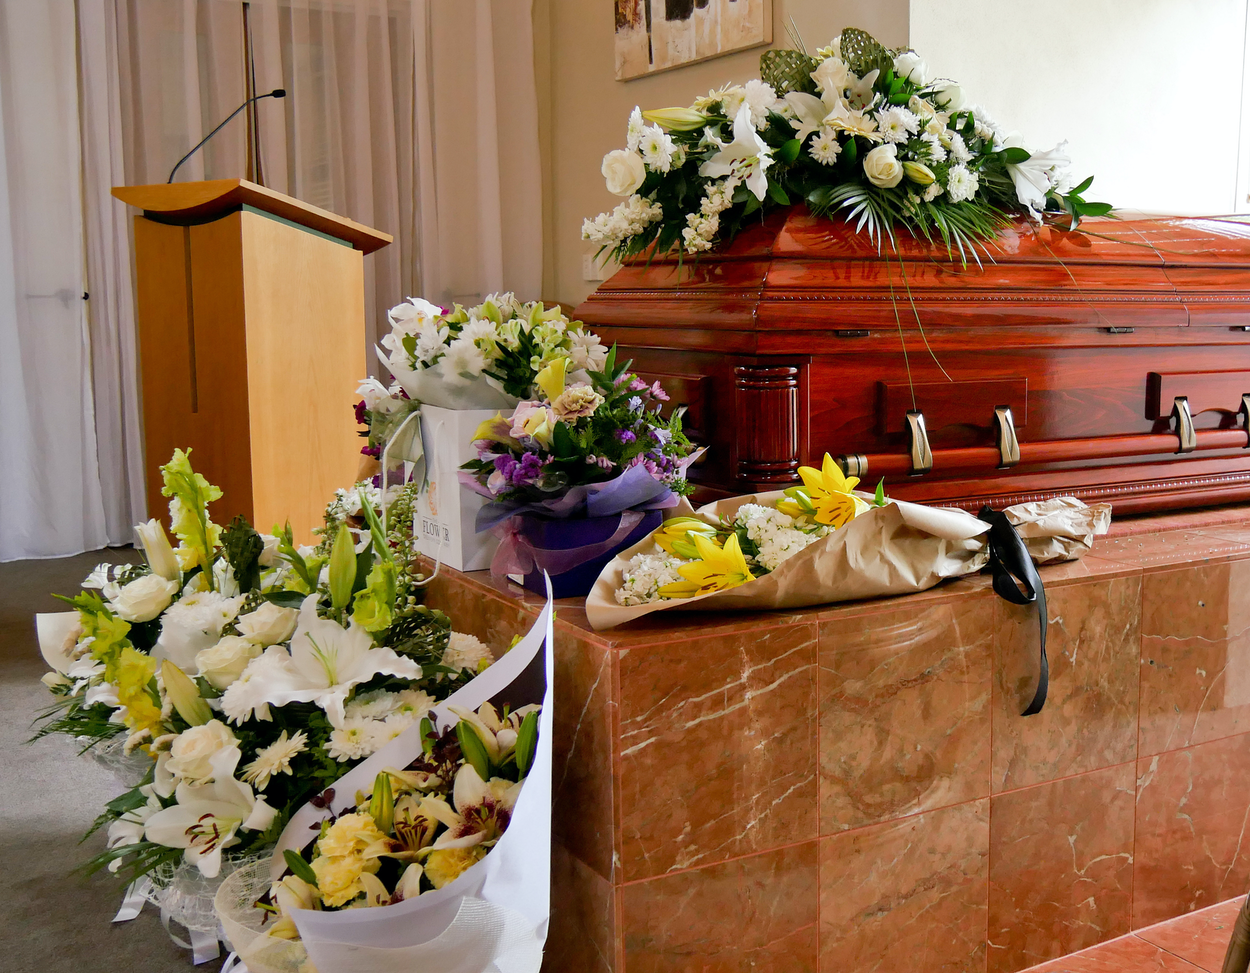 How to arrange a funeral for your loved one